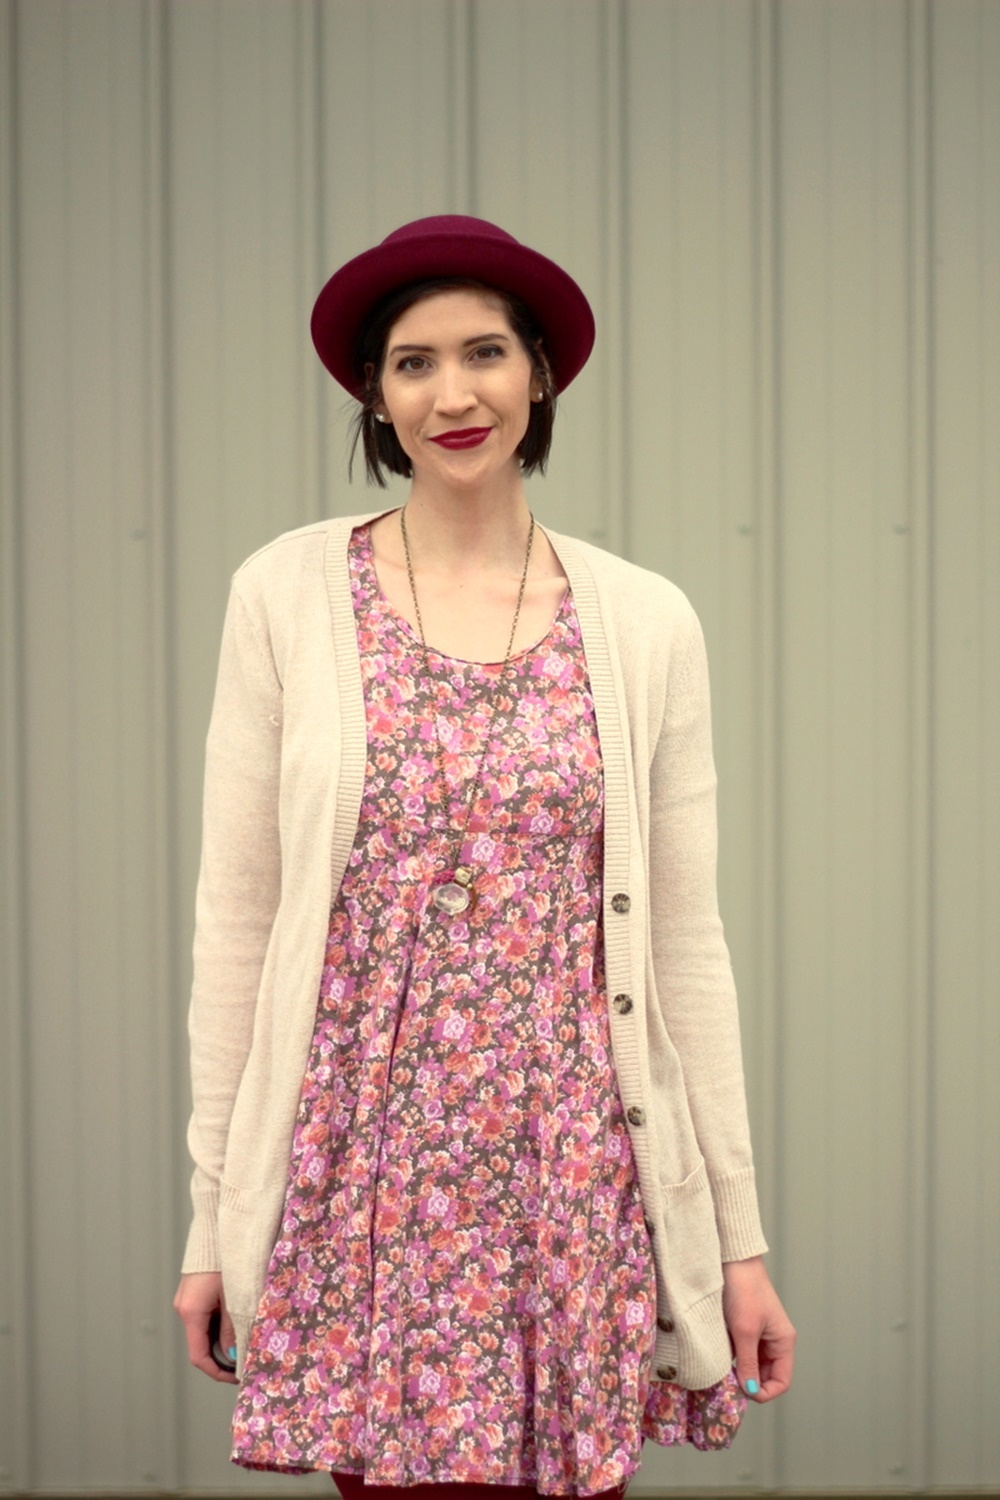 Valentine's Day outfit Thrifted floral dress, beige cardigan, bowler hat, dark lipstick, maroon tights, beige t-strap style high heels